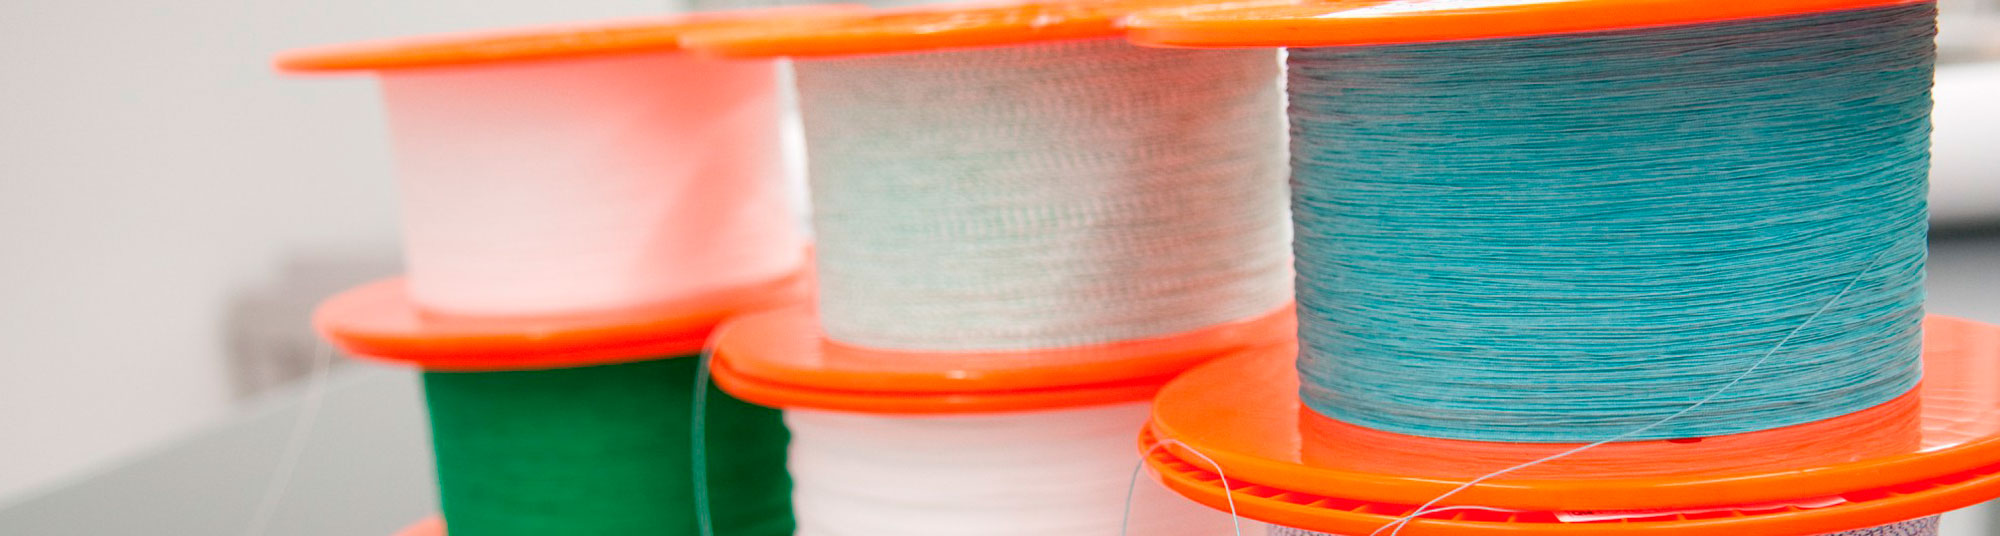 Raw materials for textile implants manufacturing